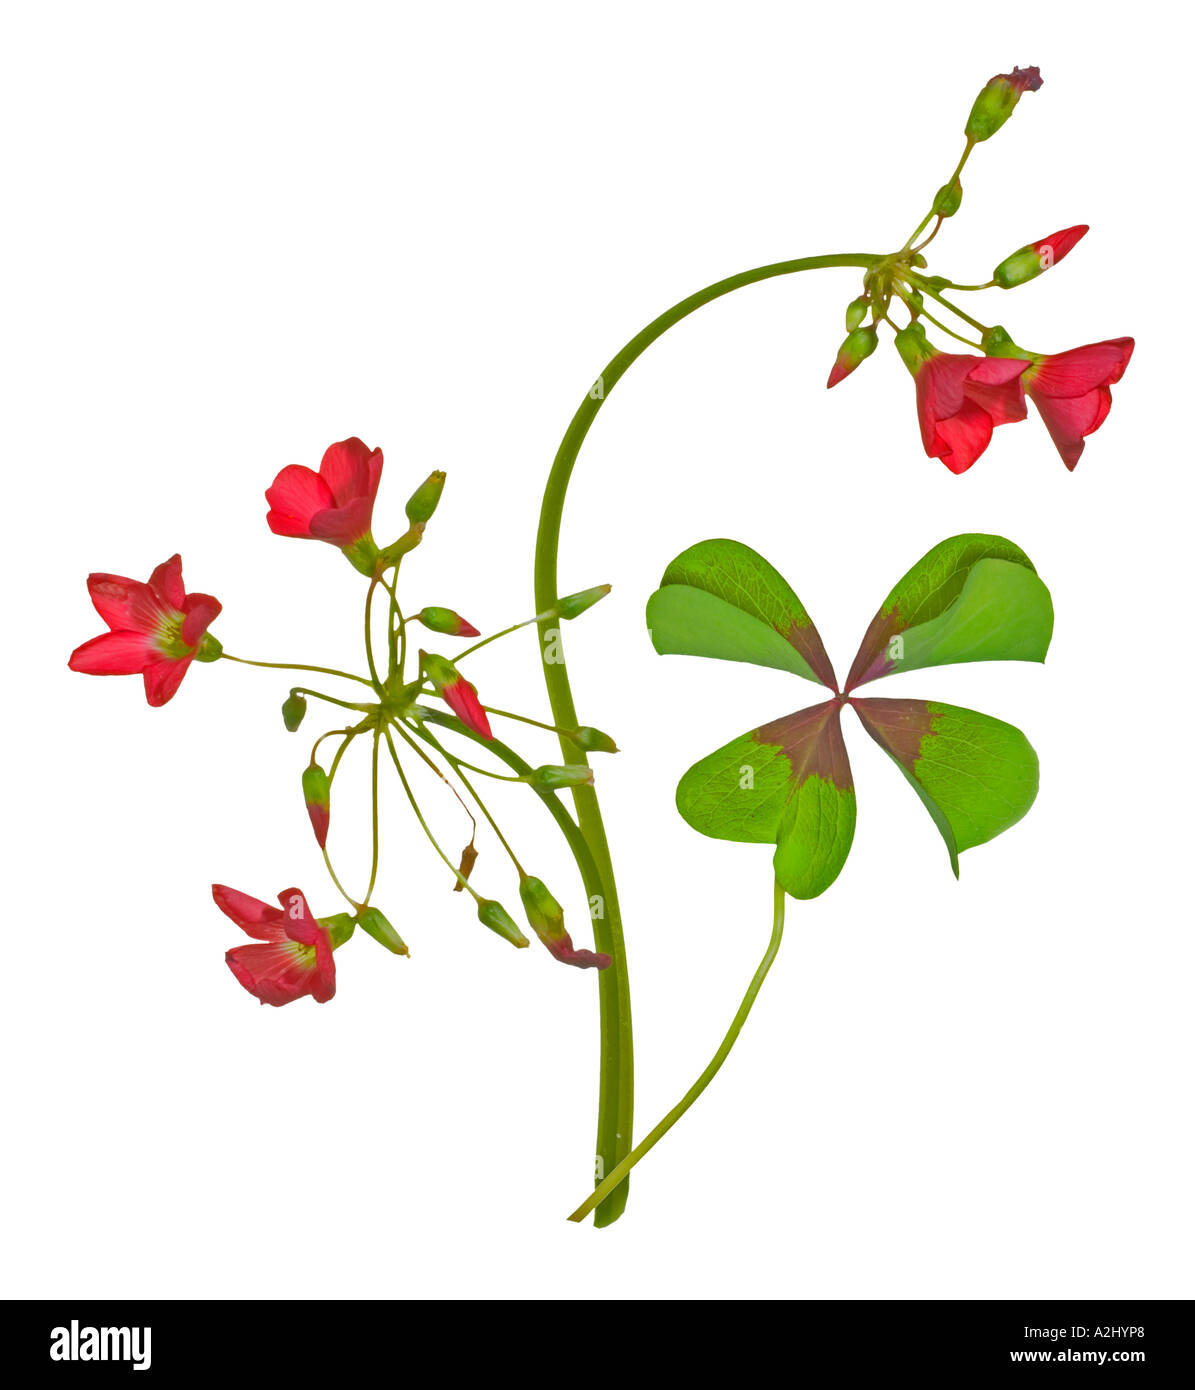 Clover Shaped Leaves Stock Photos Clover Shaped Leaves Stock